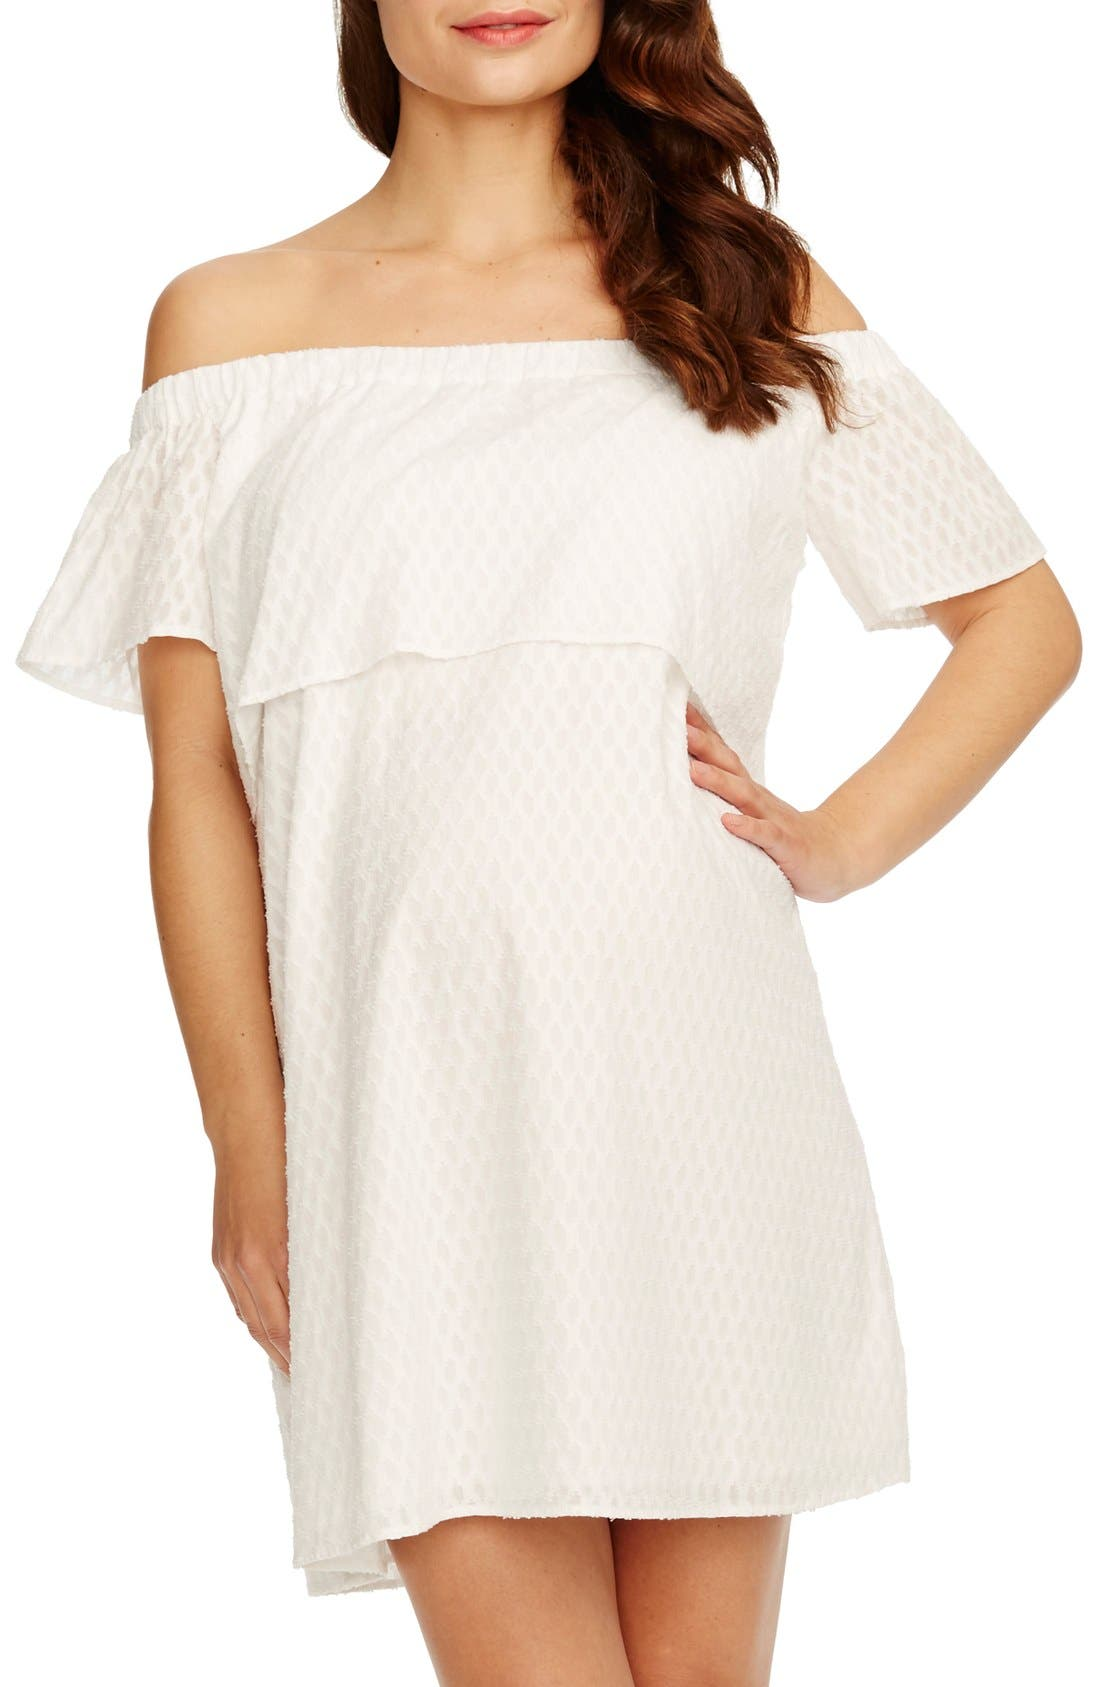 'Camille' Off the Shoulder Maternity Dress,                         Main,                         color, 100